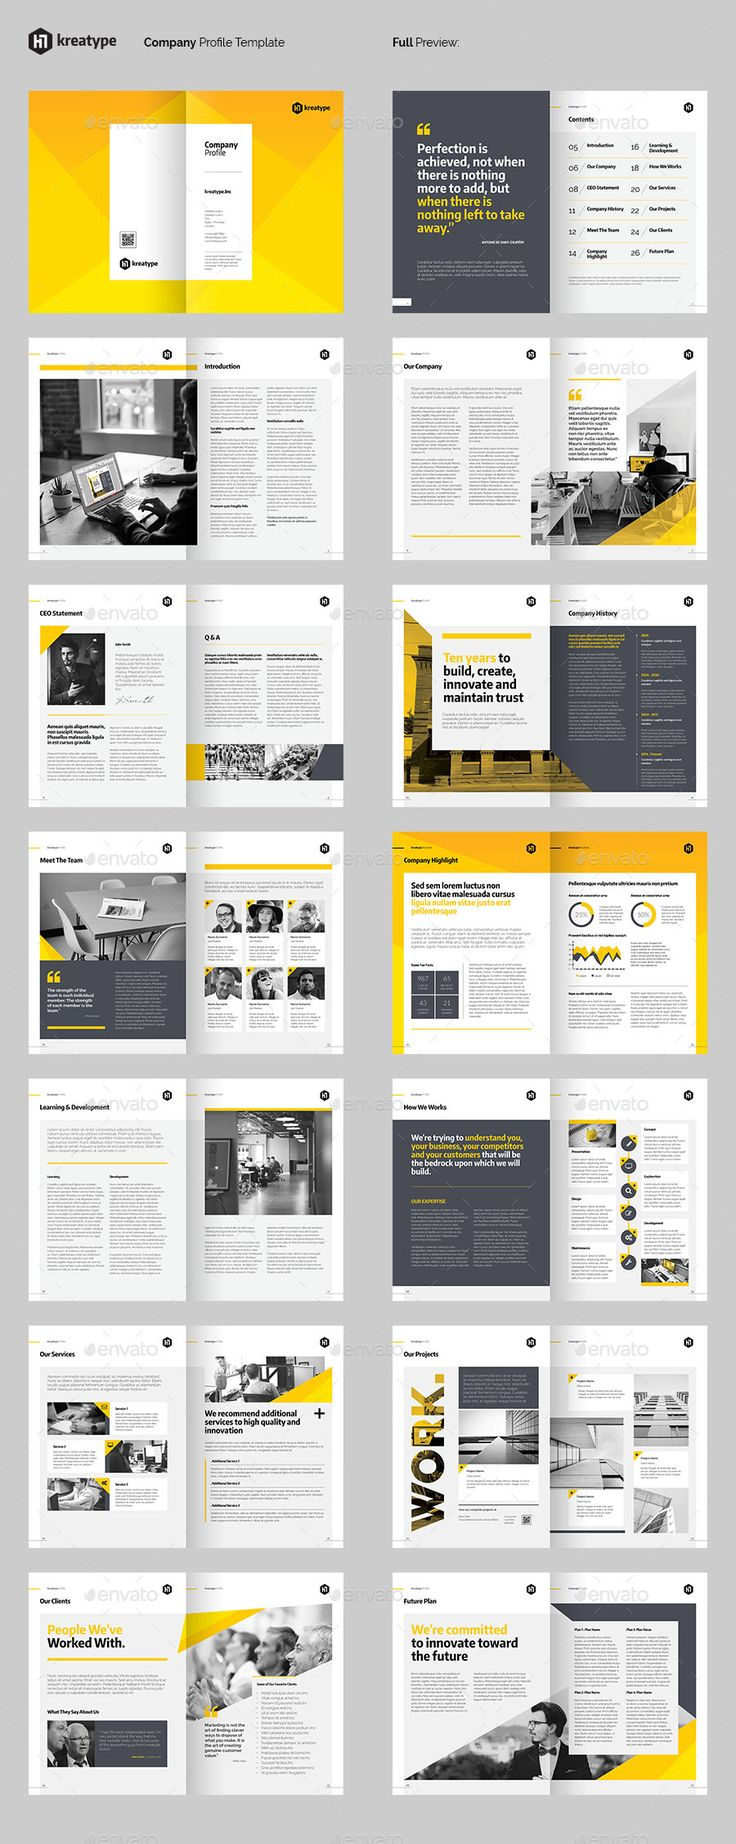 22 best InDesign Templates images on Pinterest | Indesign templates ...